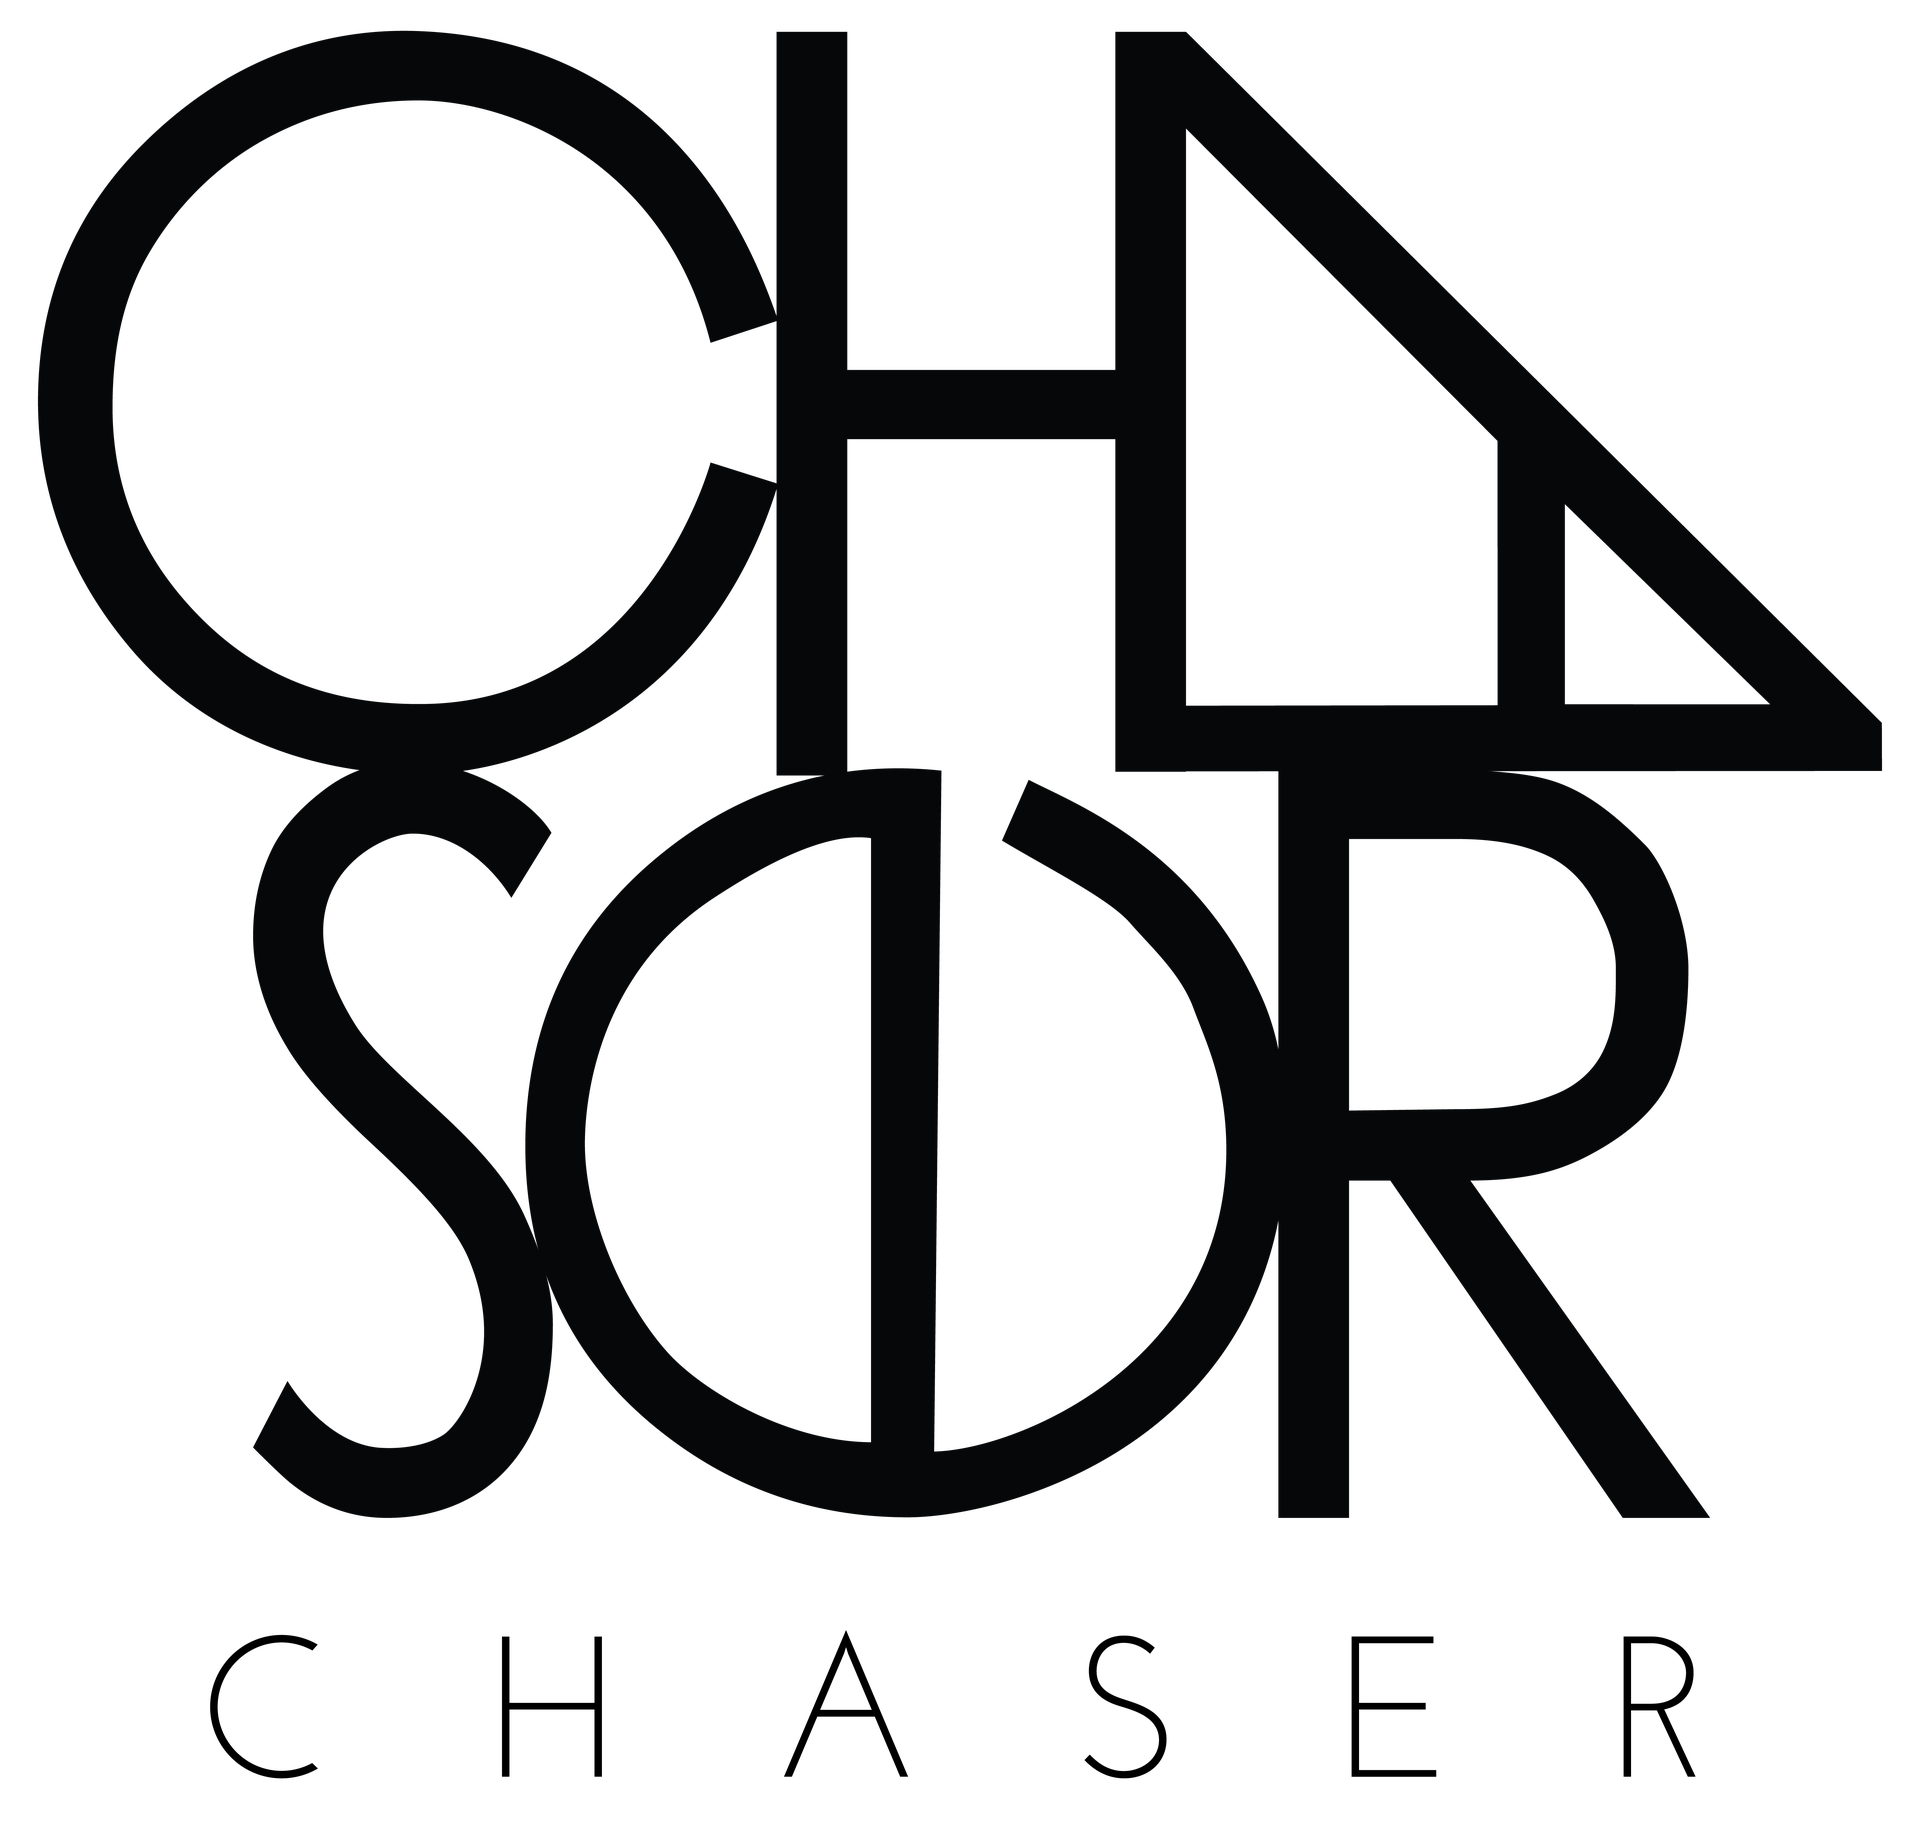 Visit Chaser at chaserbrand.com